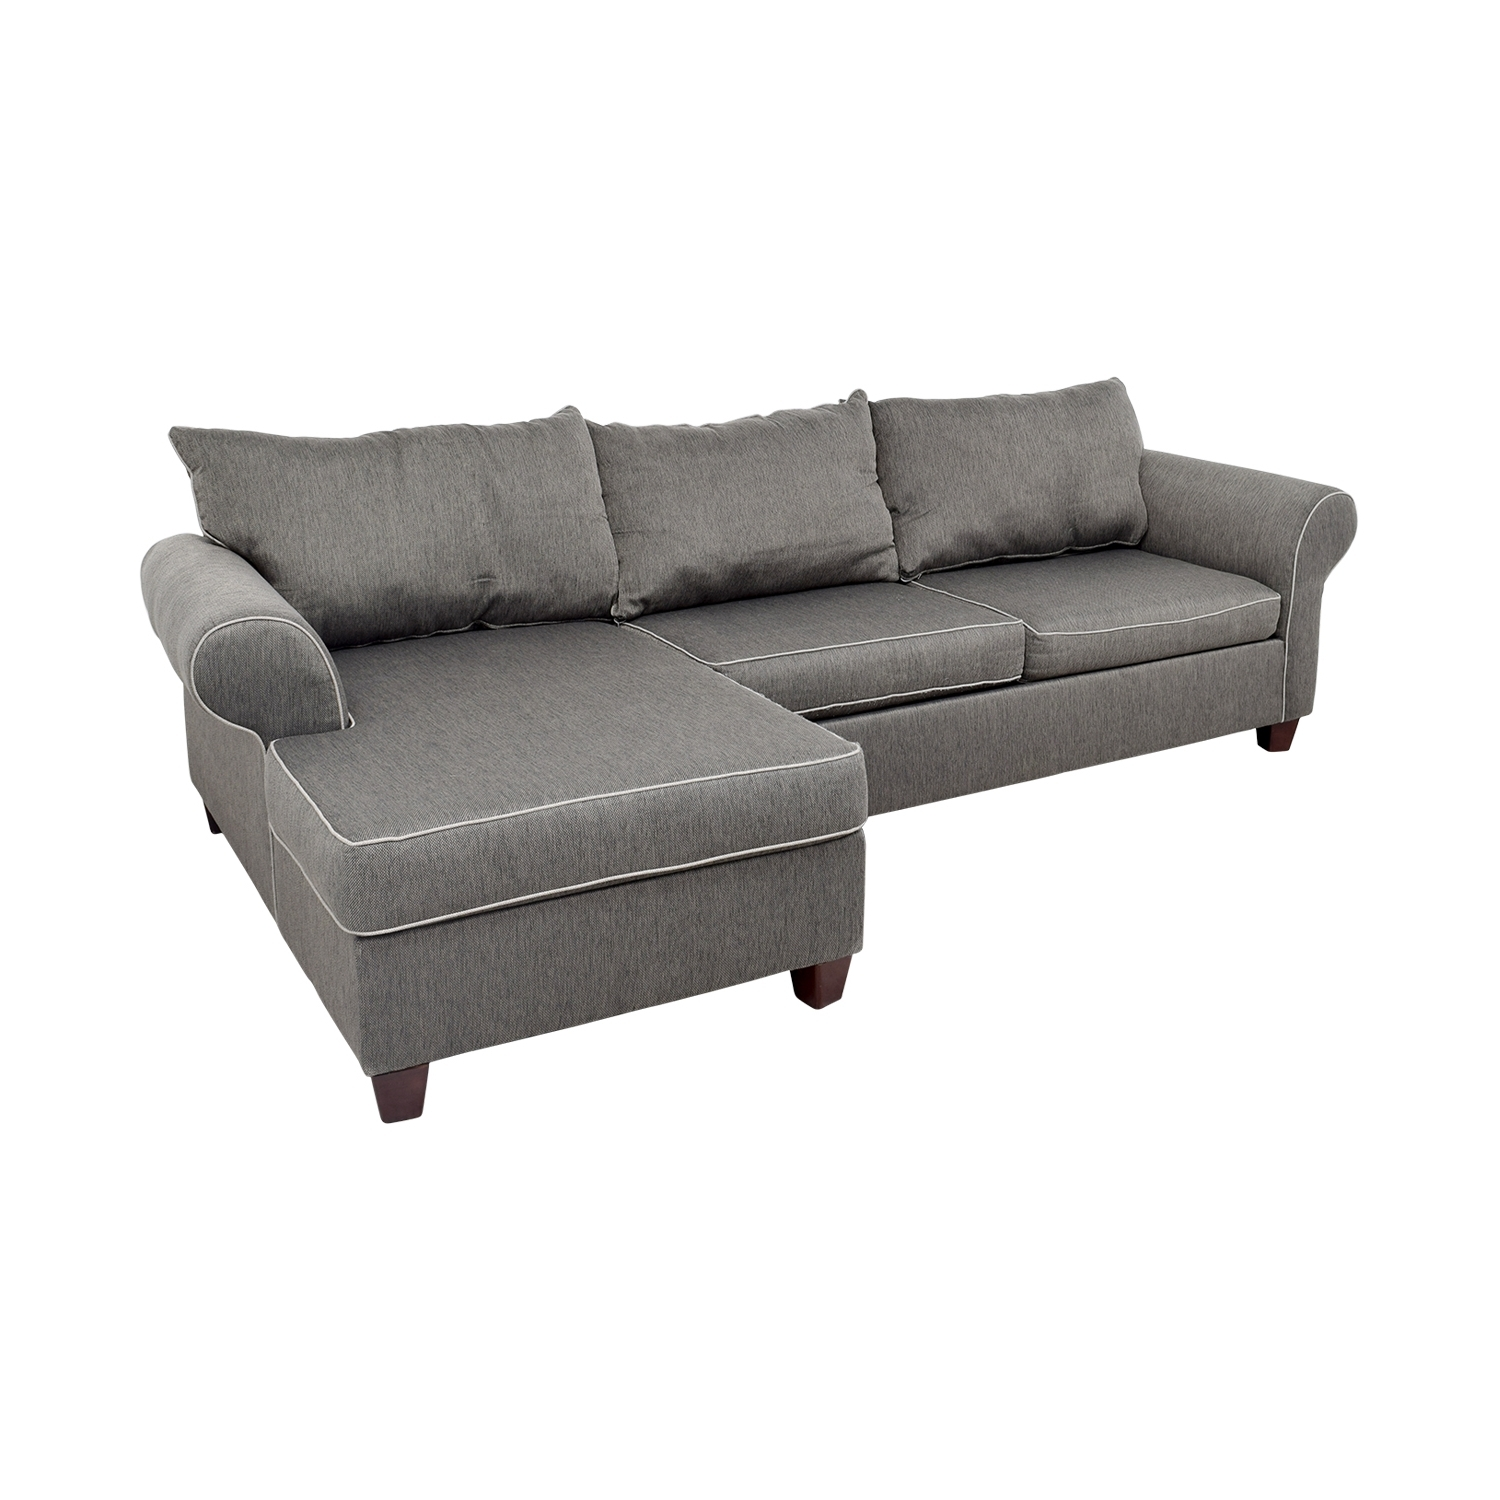 [%58% Off – Bob's Furniture Bob's Furniture Grey Chaise Sectional Throughout Most Recently Released Bobs Furniture Chaises|Bobs Furniture Chaises Regarding Recent 58% Off – Bob's Furniture Bob's Furniture Grey Chaise Sectional|Well Known Bobs Furniture Chaises With 58% Off – Bob's Furniture Bob's Furniture Grey Chaise Sectional|Recent 58% Off – Bob's Furniture Bob's Furniture Grey Chaise Sectional Intended For Bobs Furniture Chaises%] (View 5 of 15)